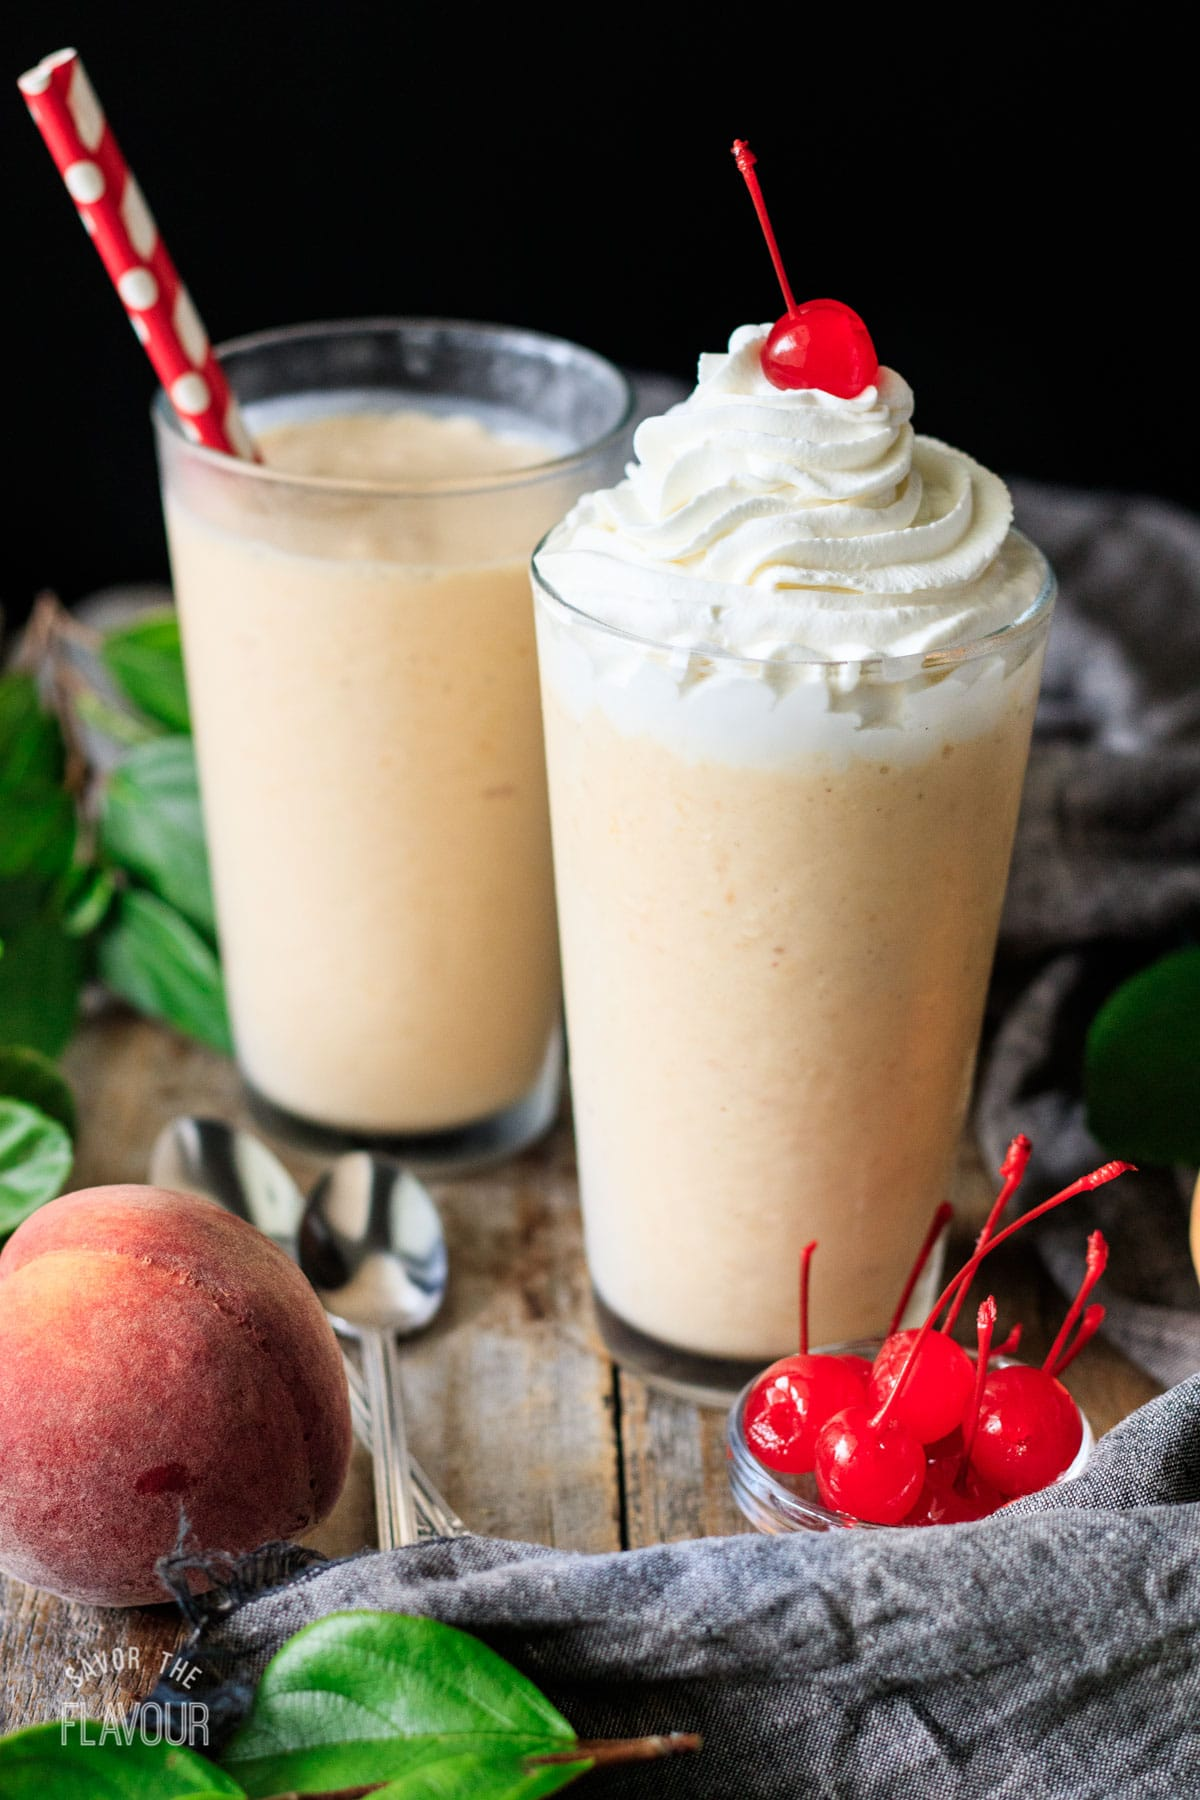 a peach milkshake with whipped cream and a cherry